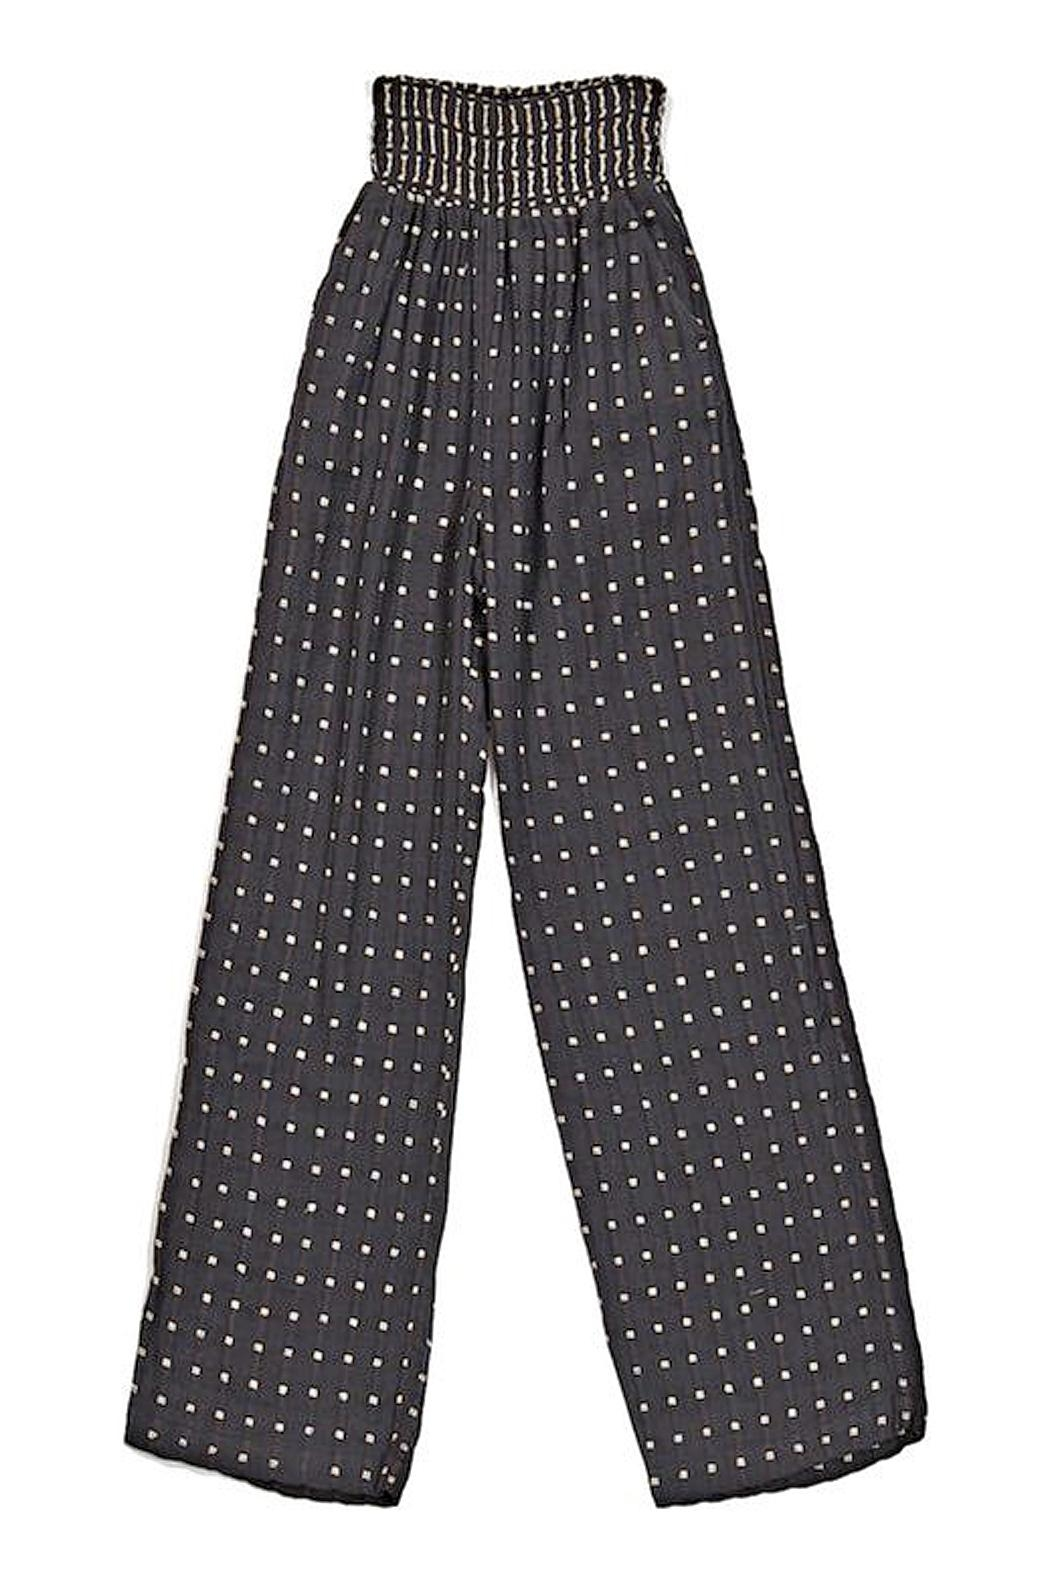 Ace & Jig Siesta Pants - Main Image